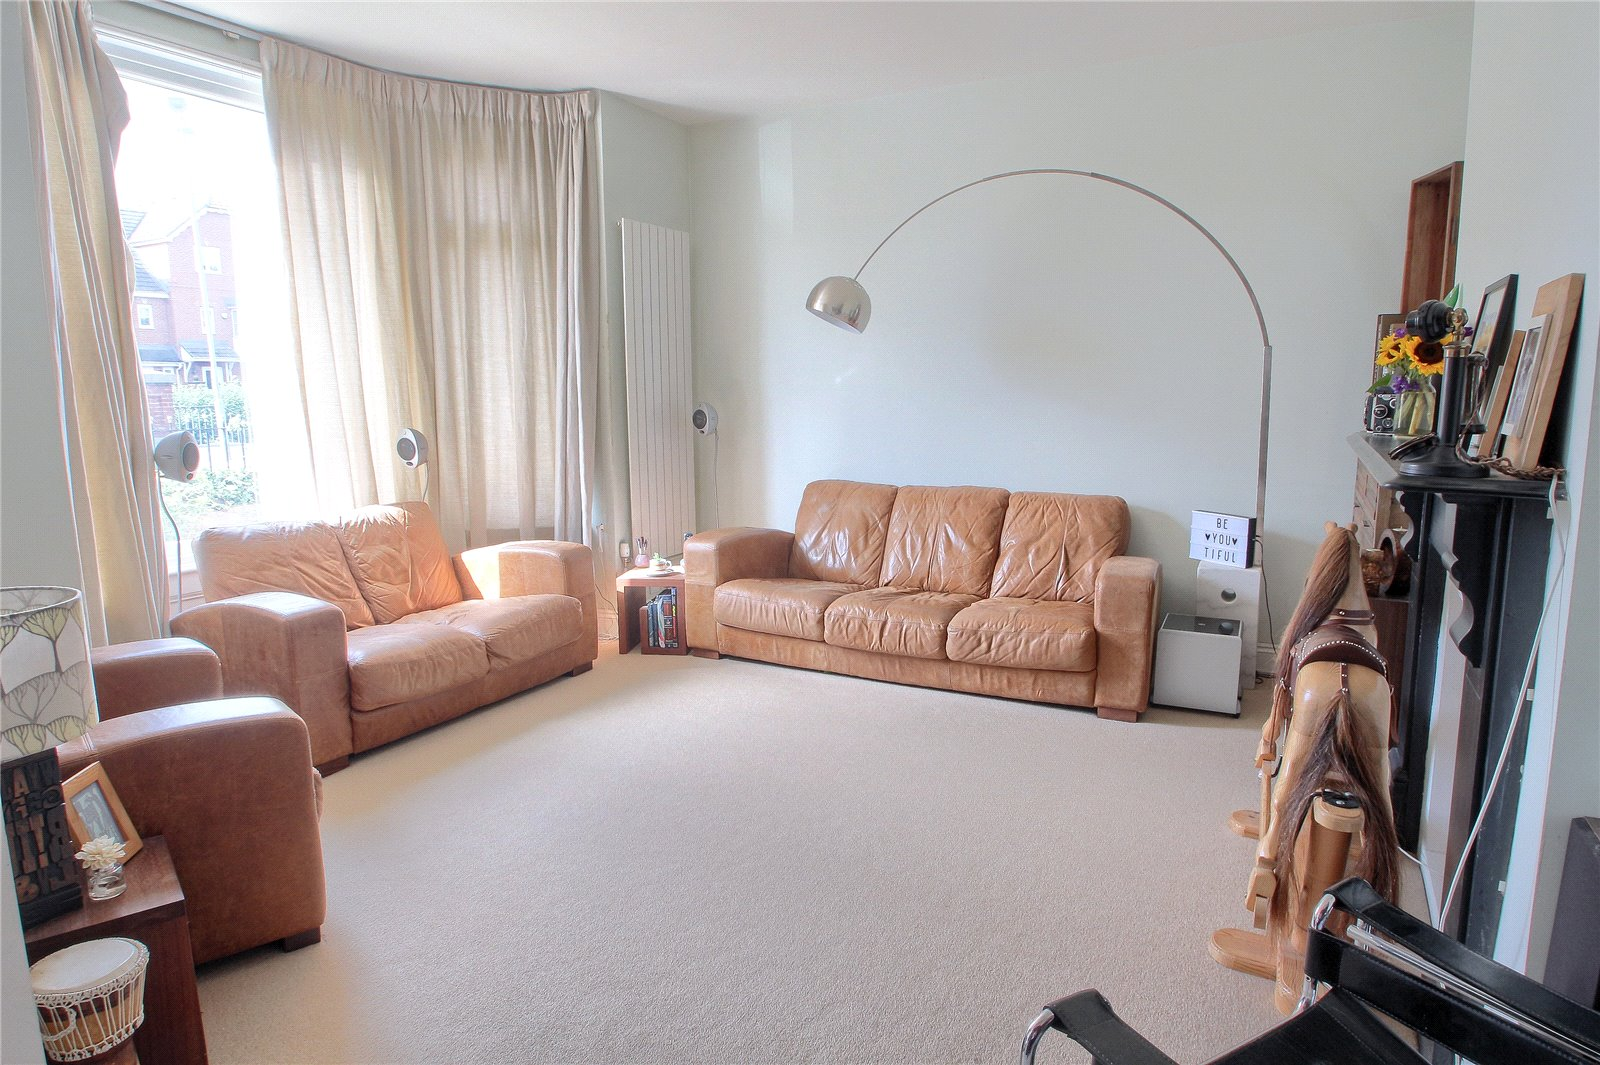 5 bed house for sale in Varo Terrace, Stockton-on-Tees 2